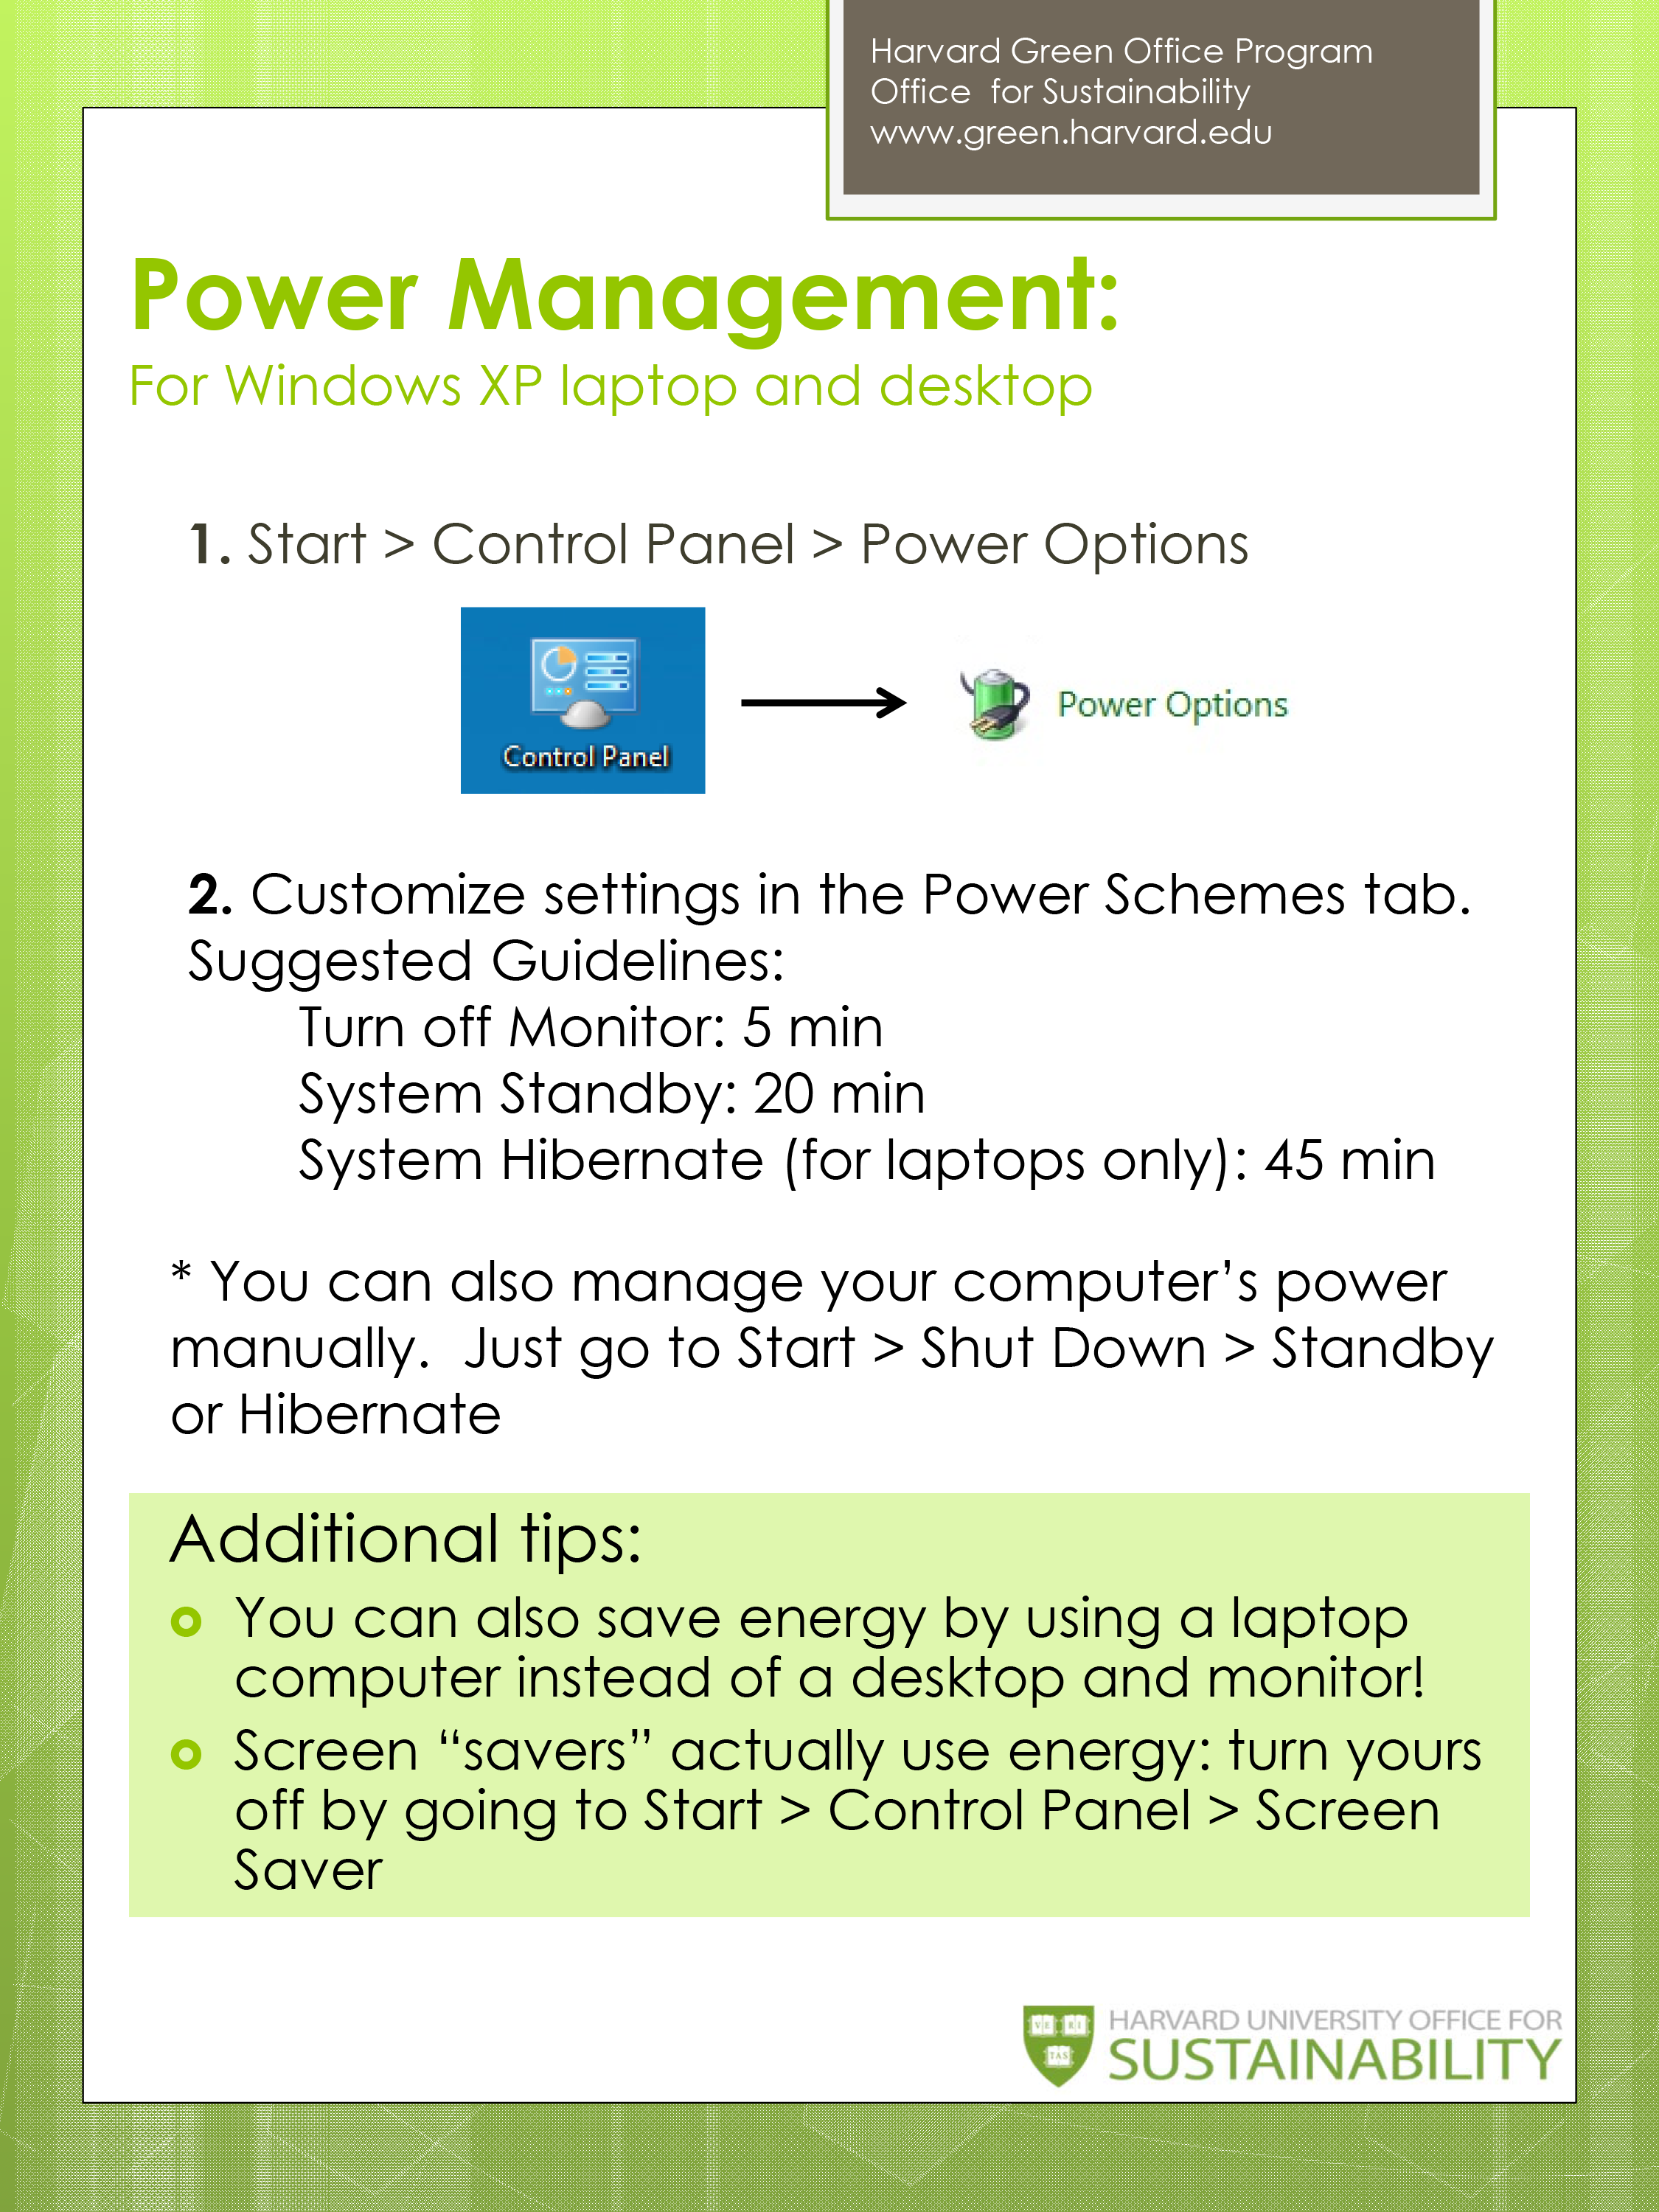 Power Management For Windows Computers Sustainability At